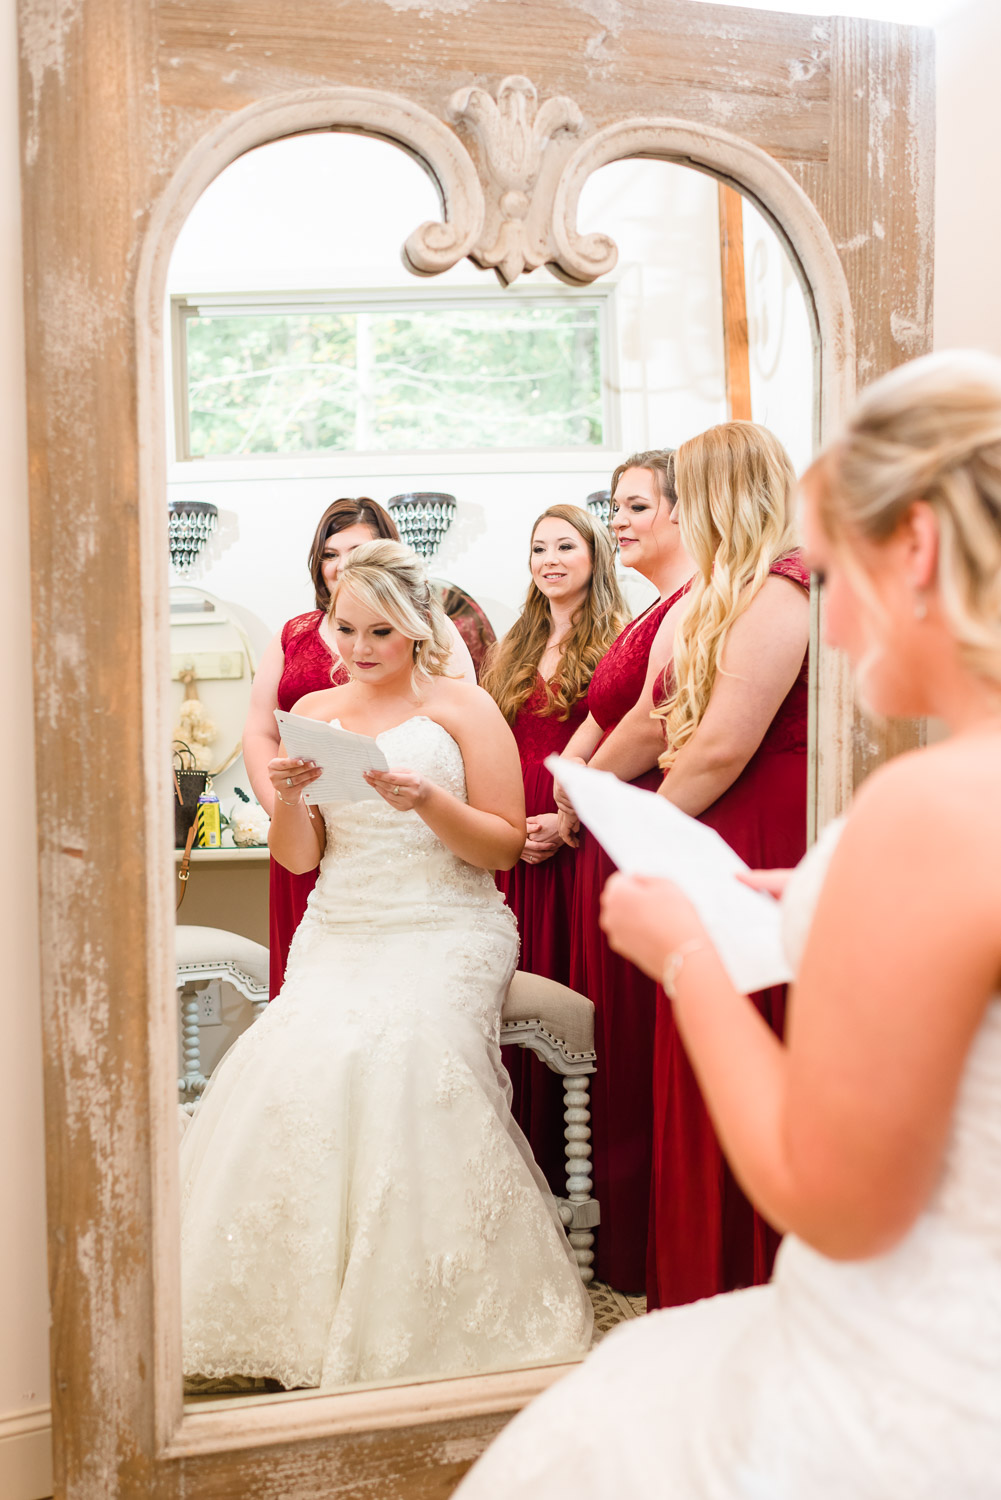 reflection in mirror of bride reading a letter from groom with her bridesmaids wearing red in the background